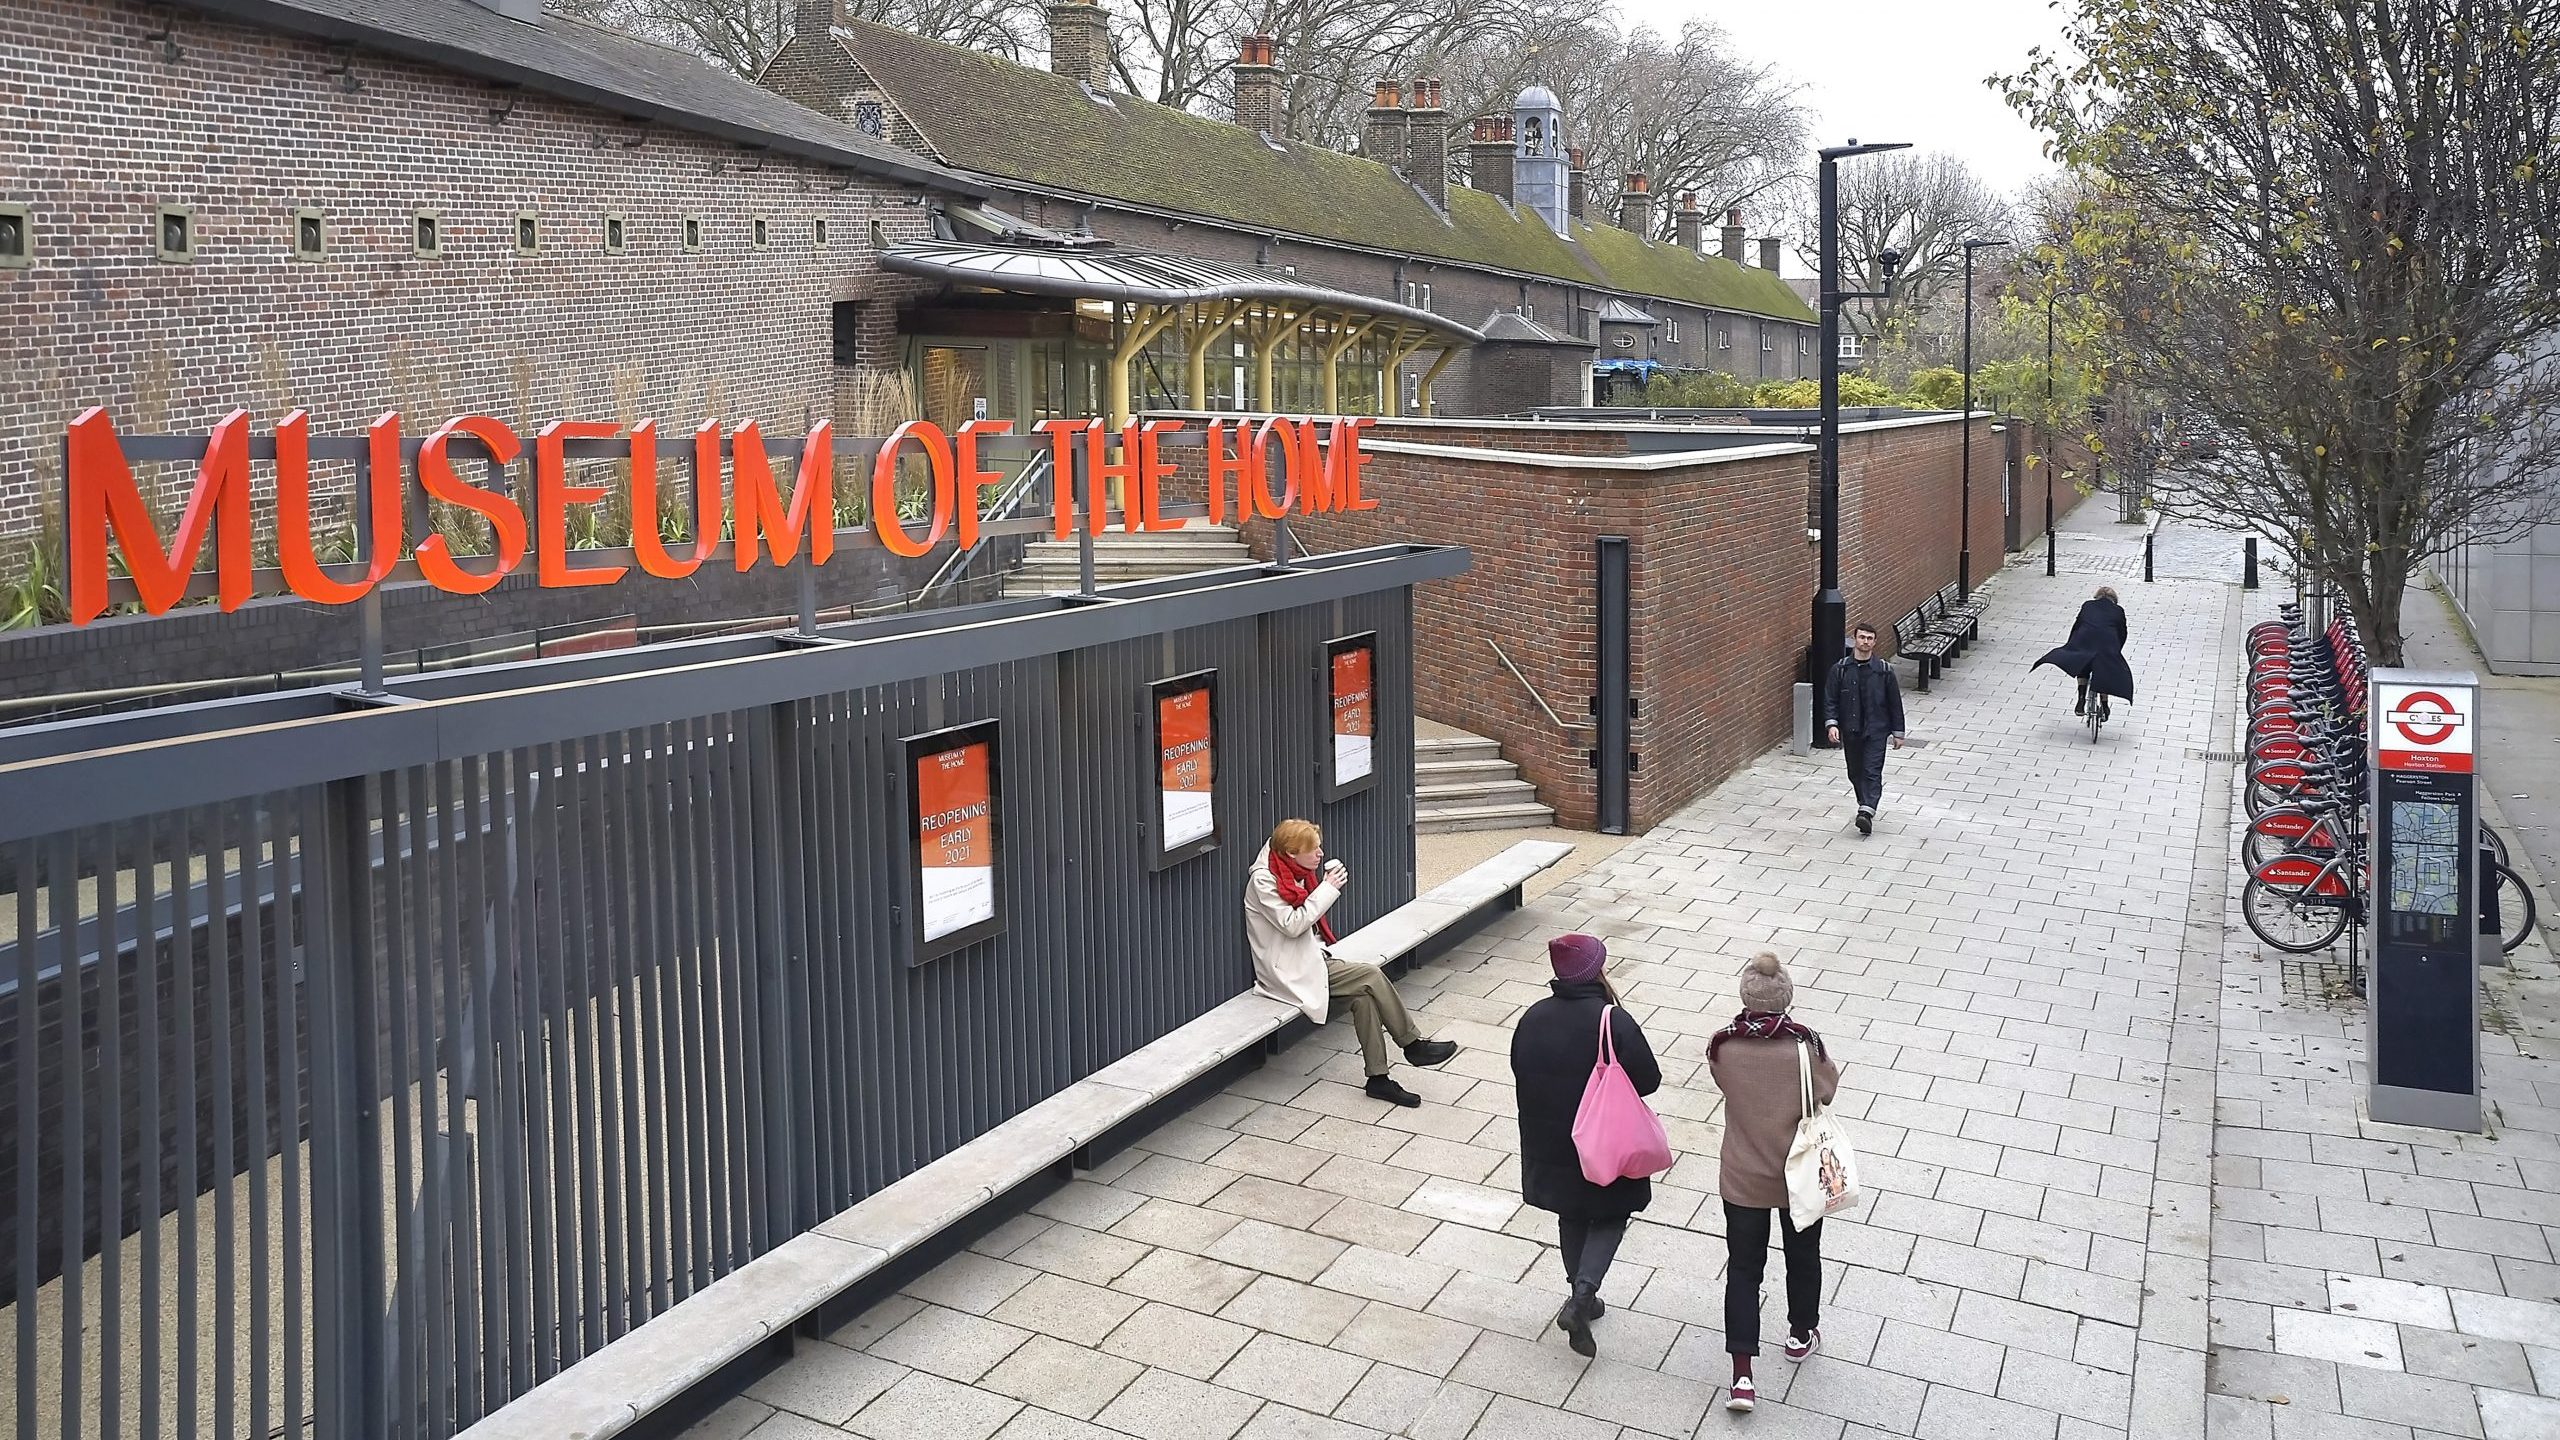 The new entrance to the Museum of the Home opposite Hoxton Station